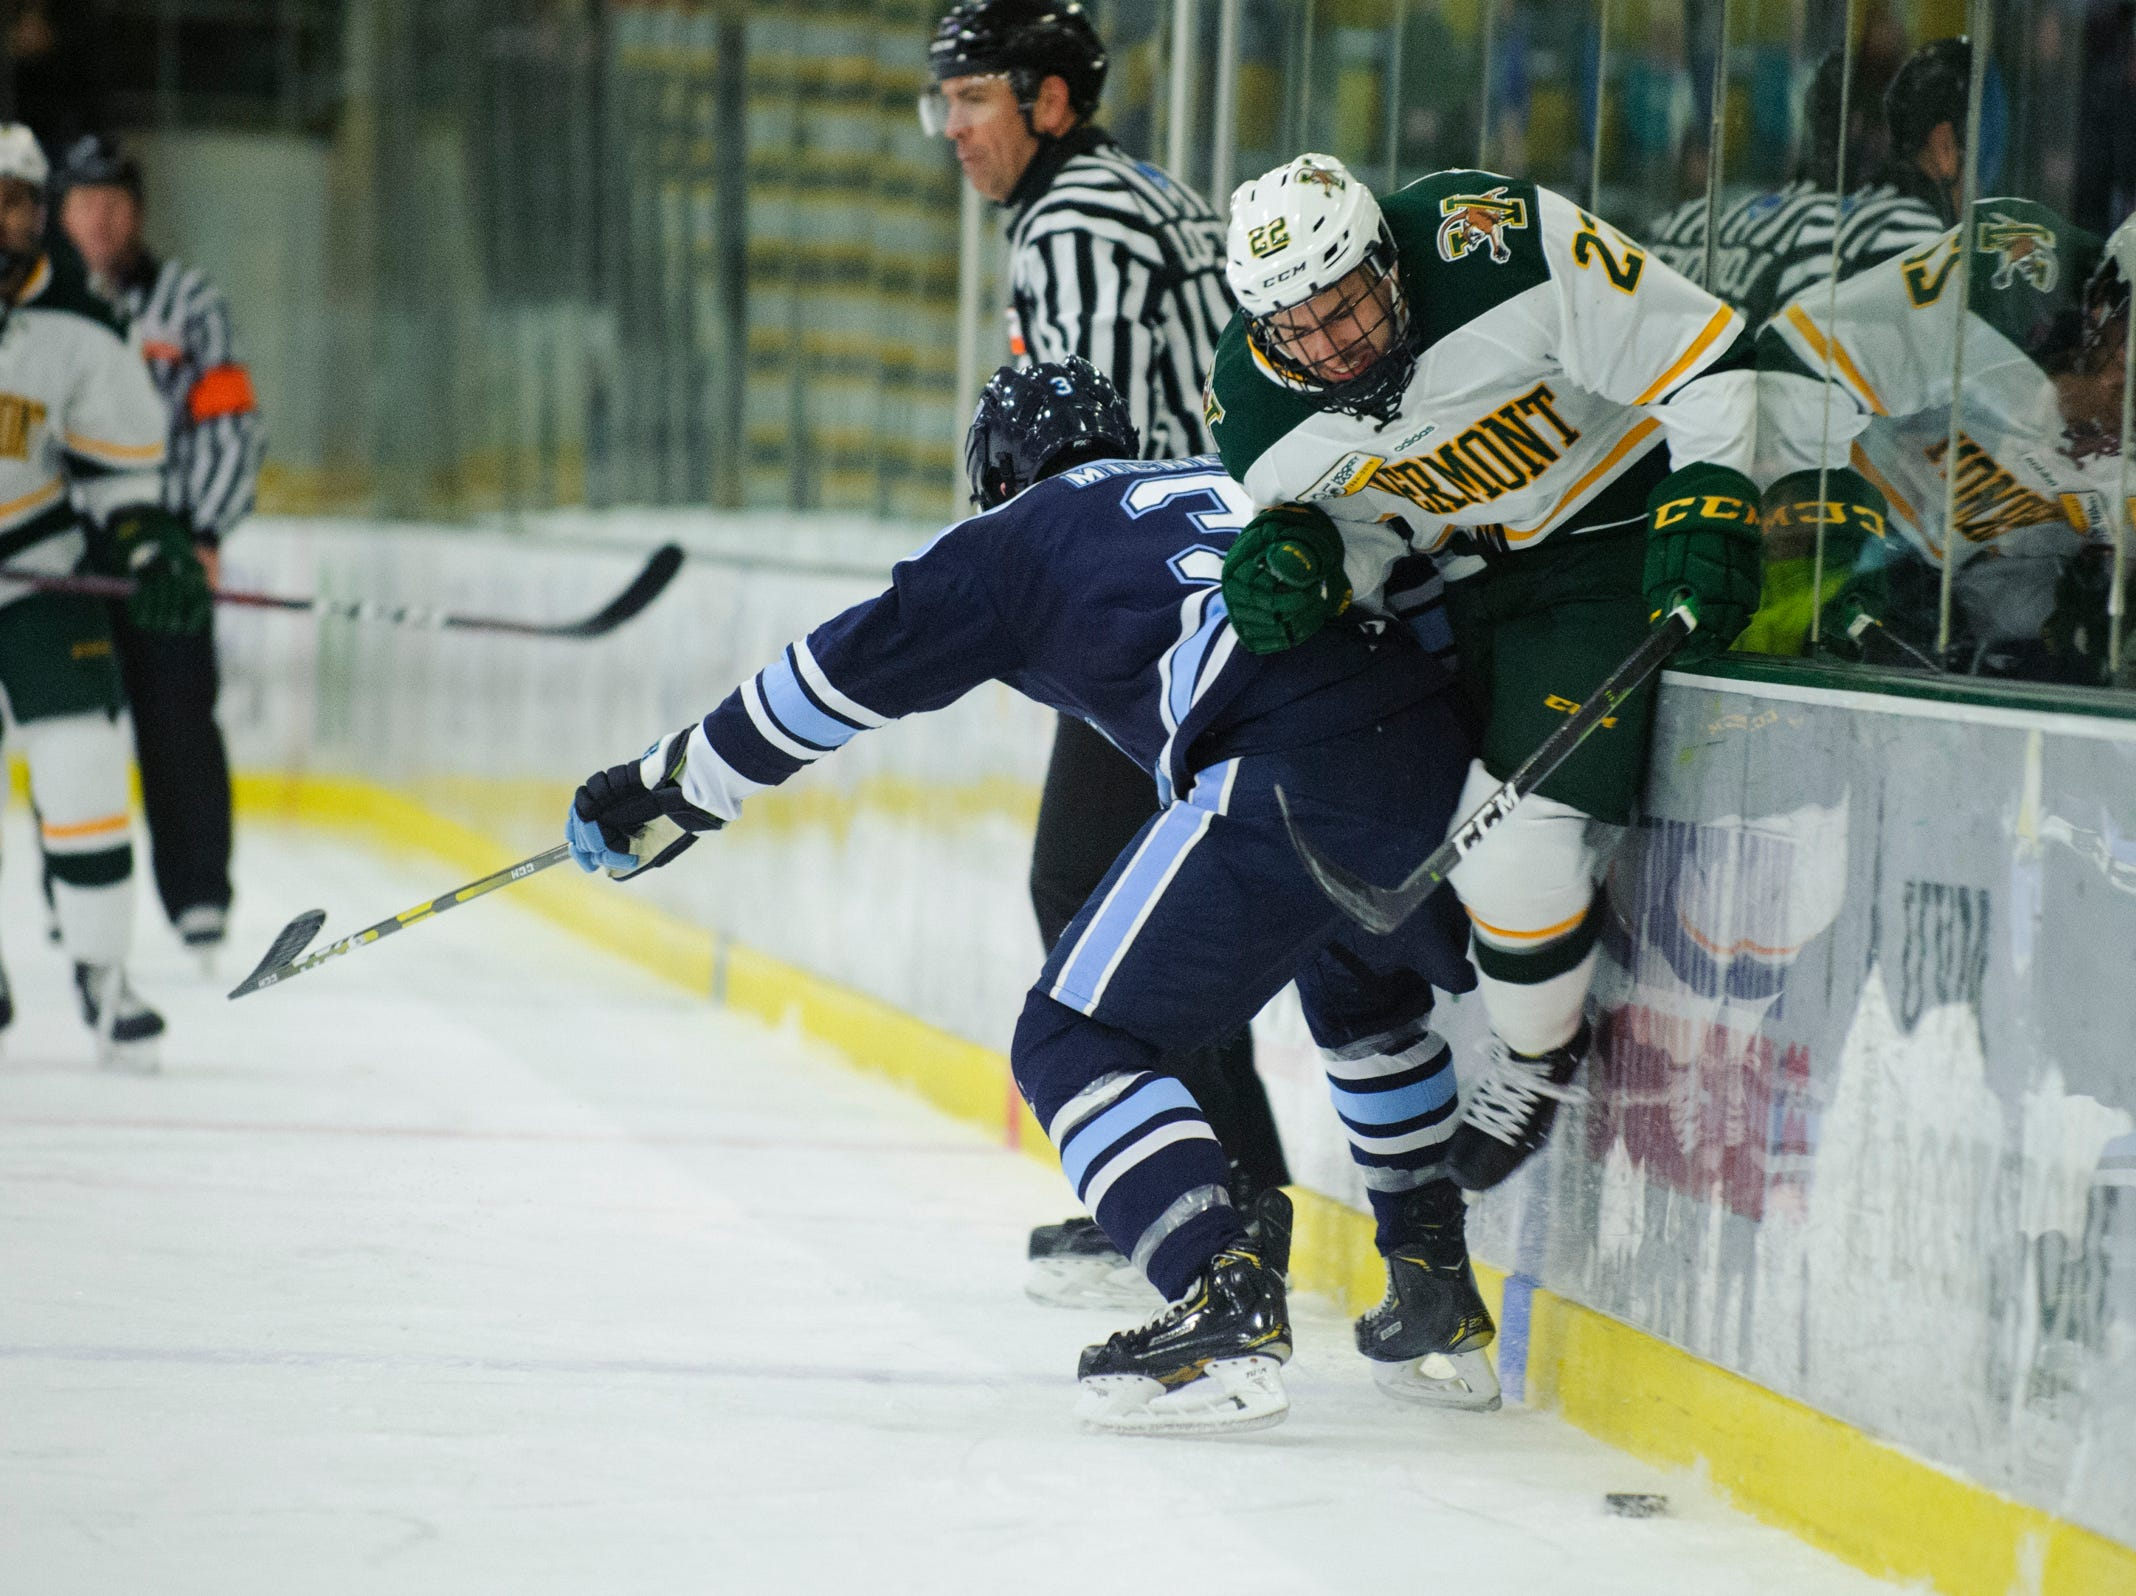 Maine's Rob Michel (3) checks Vermont forward Alex Esposito (22) into the boards during the men's hockey game between the Mine Black Bears and the Vermont Catamounts at Gutterson Field House on Friday night November 30, 2018 in Burlington.